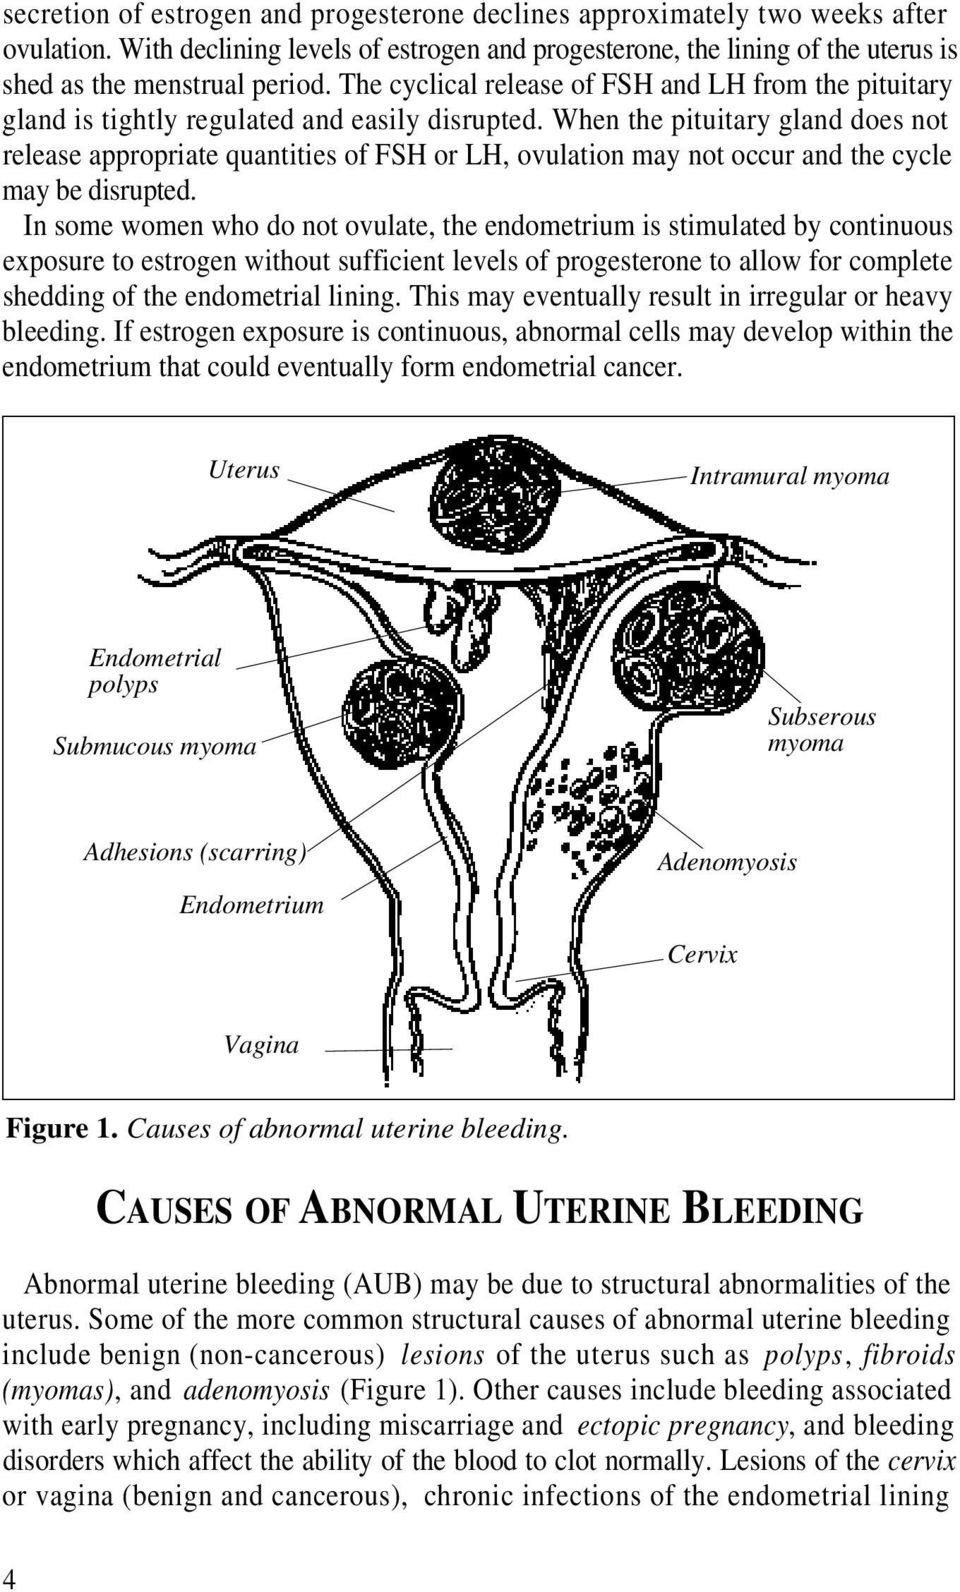 When the pituitary gland does not release appropriate quantities of FSH or LH, ovulation may not occur and the cycle may be disrupted.